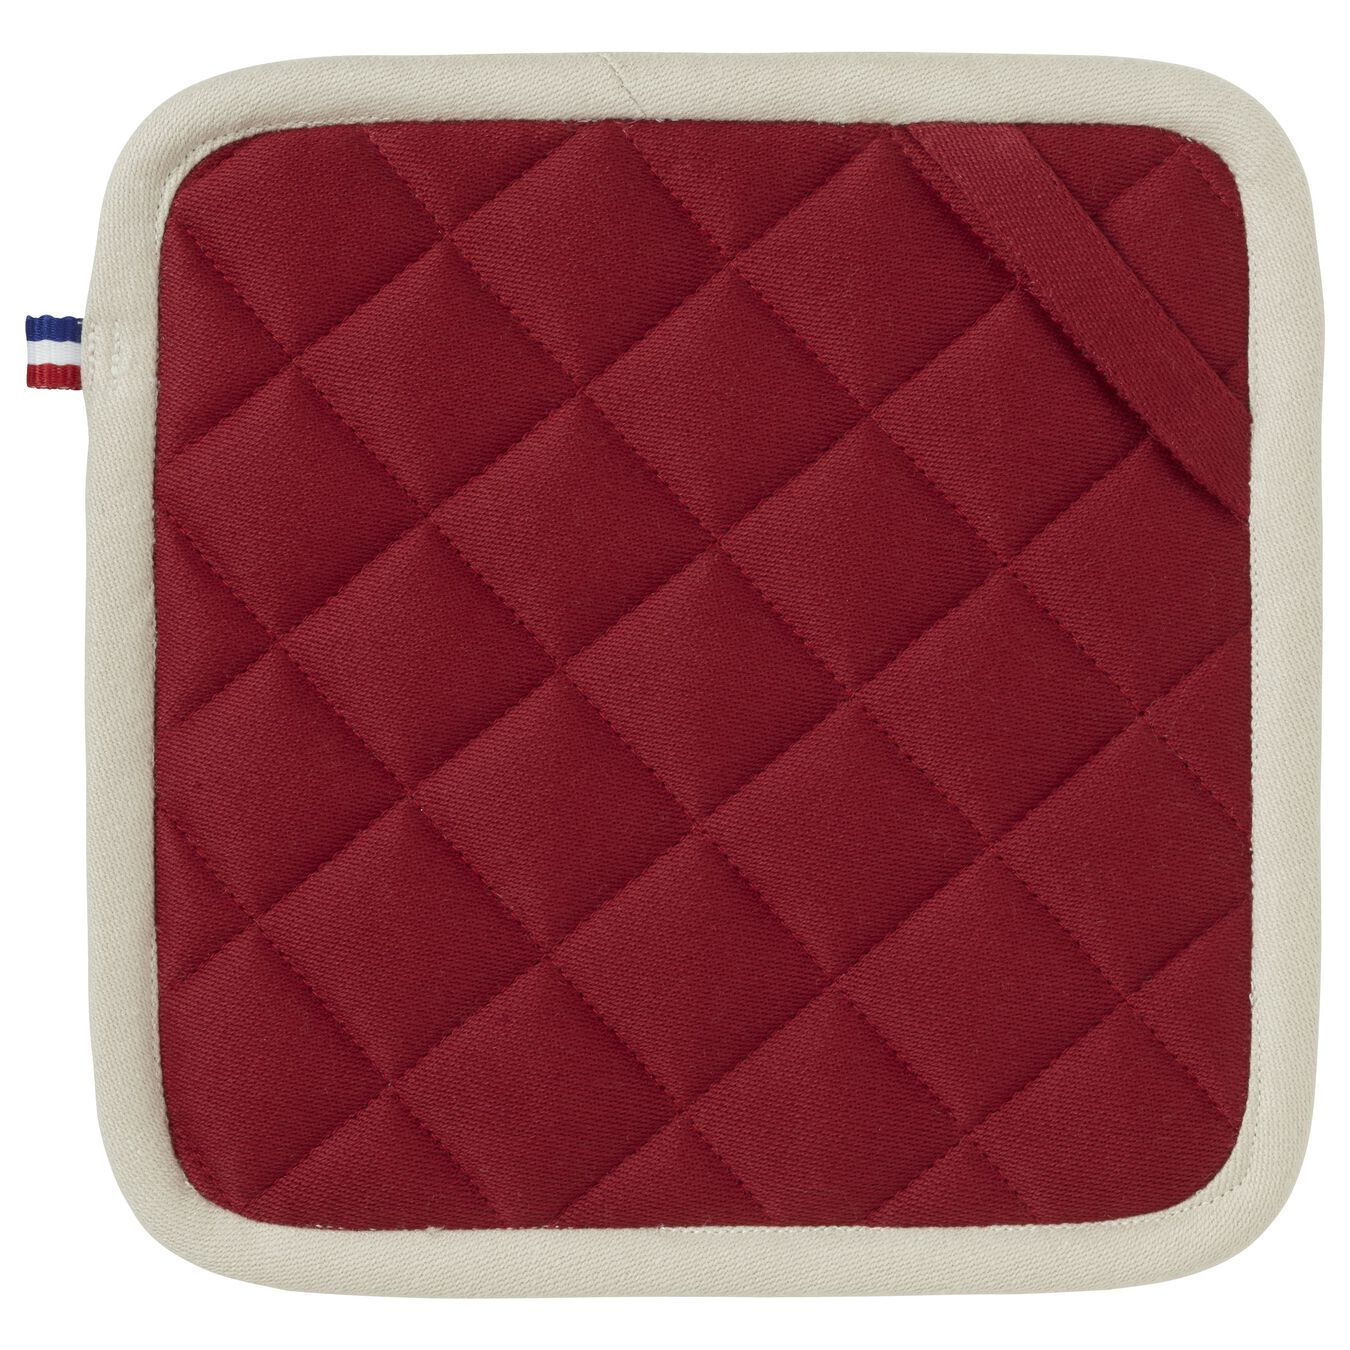 2 Piece Cotton Pot holder set, cherry,,large 2